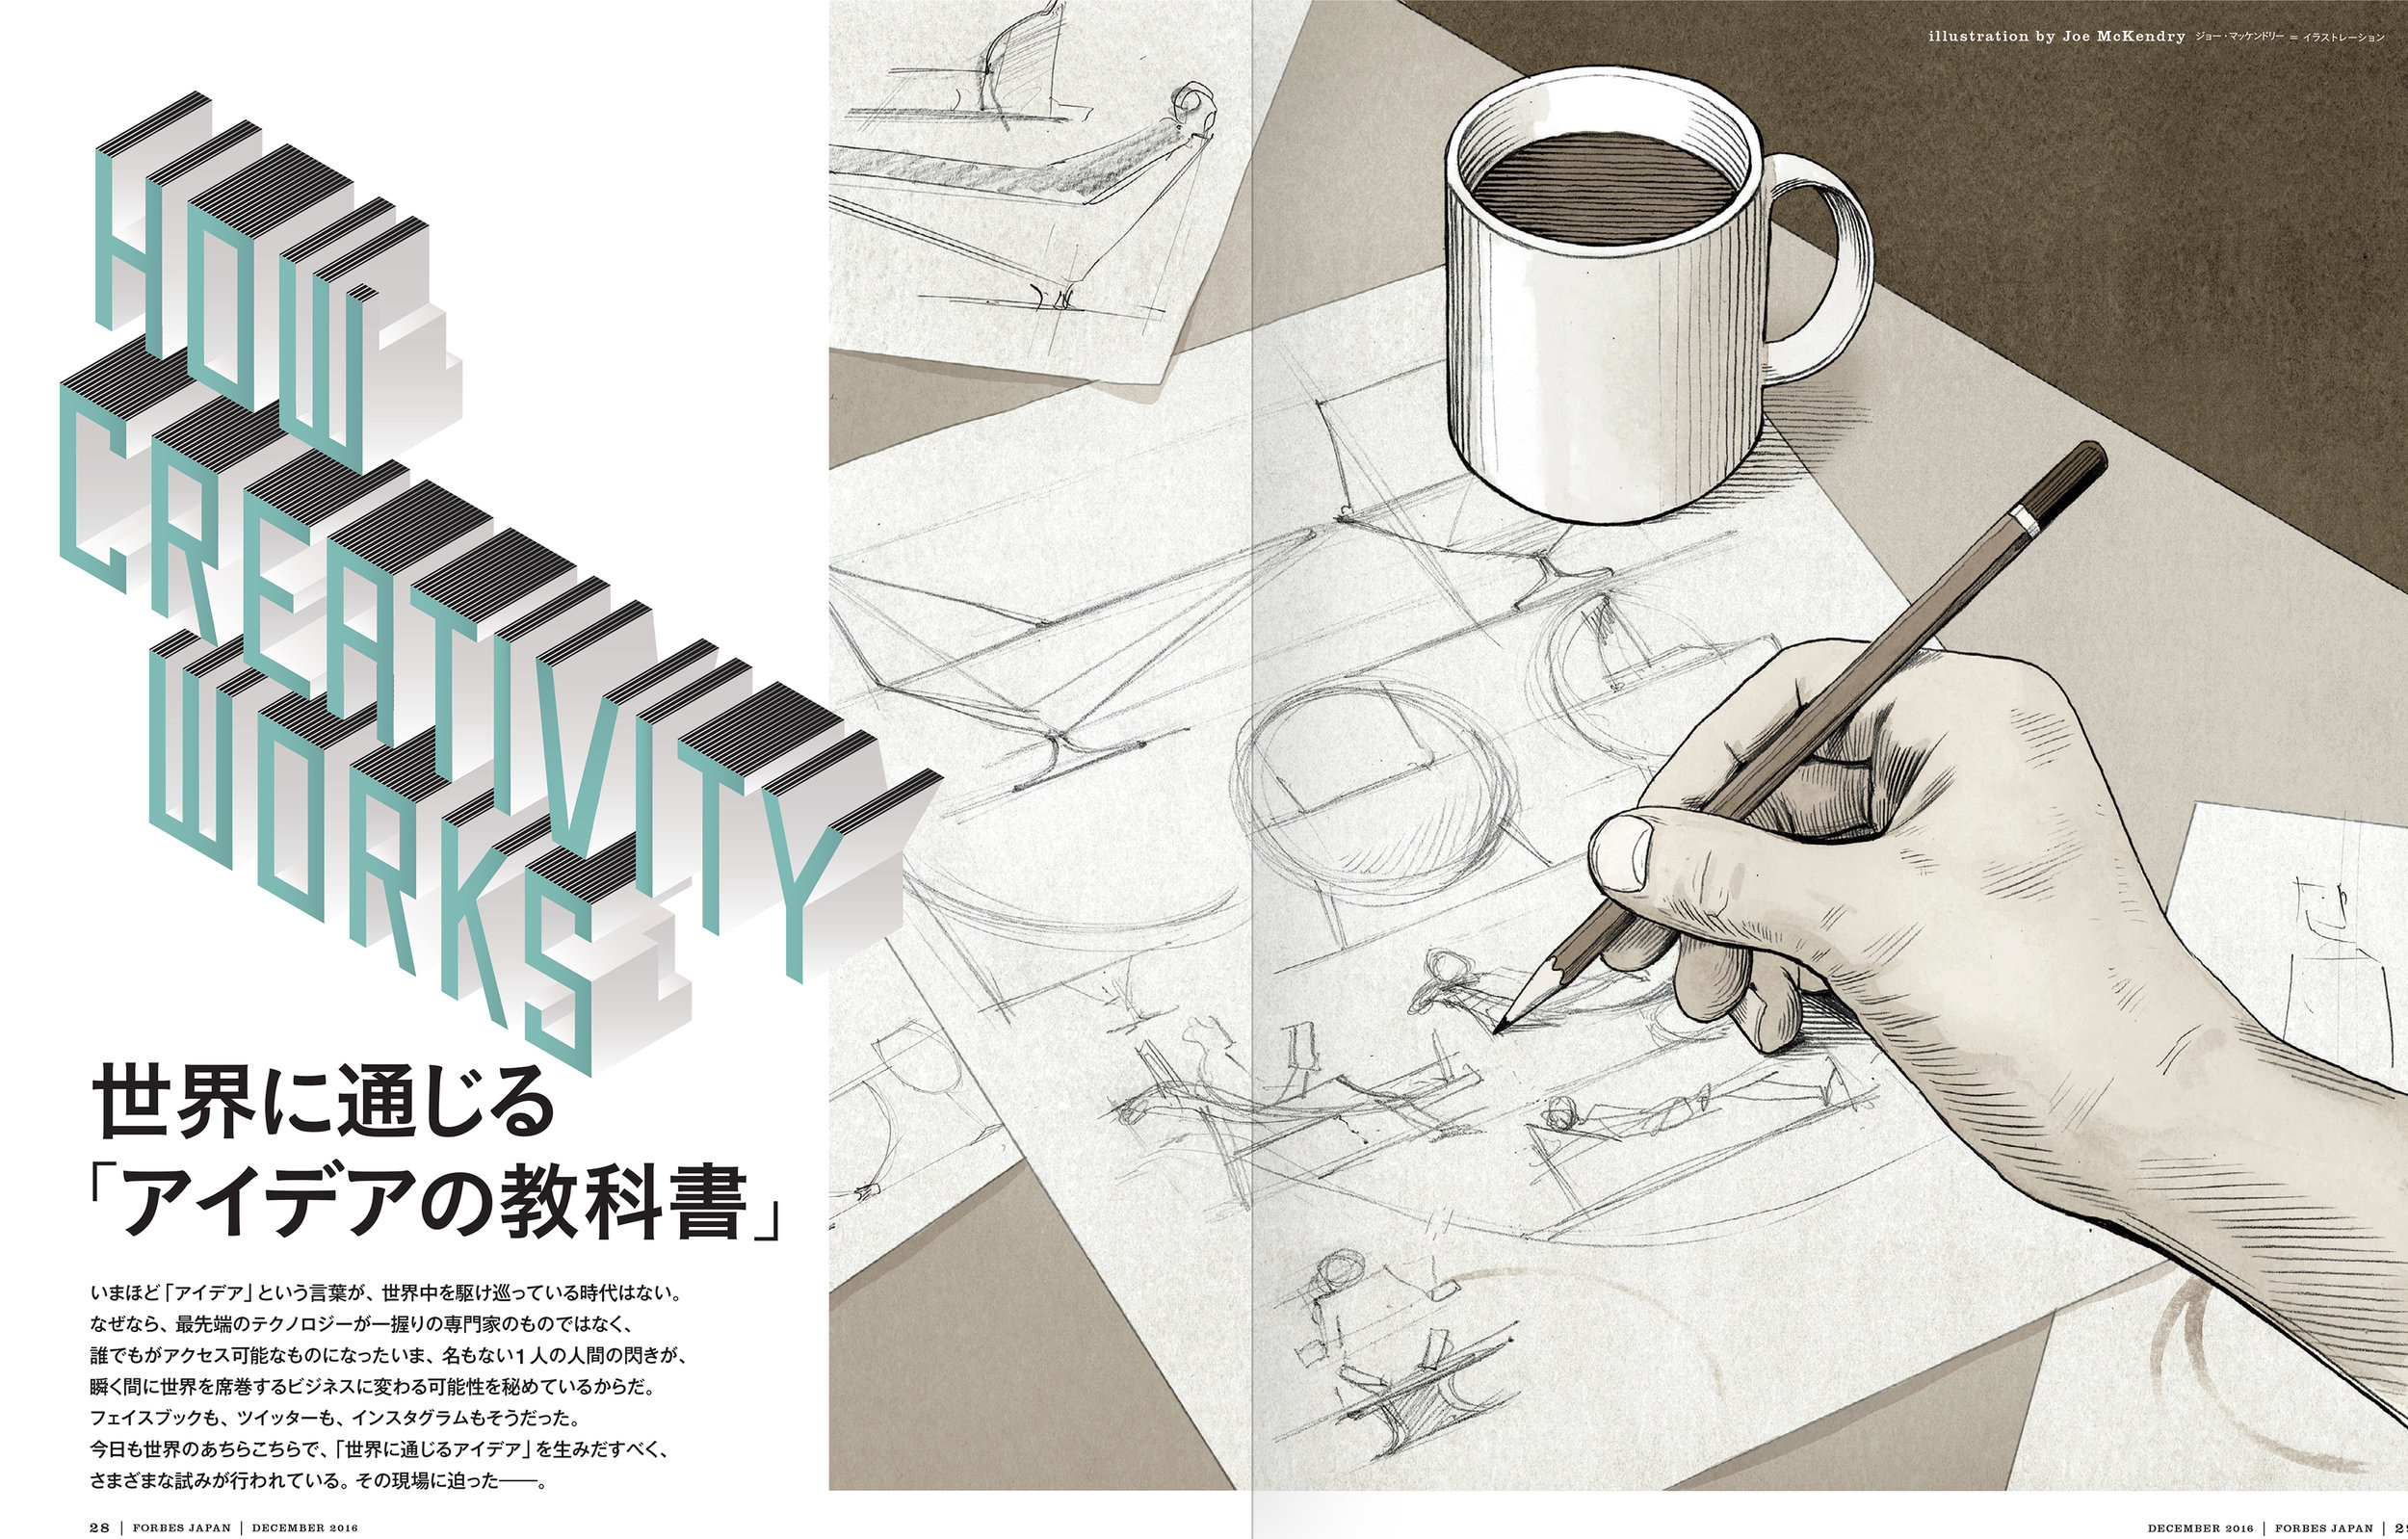 HOW CREATIVITY WORKS Forbes Japan